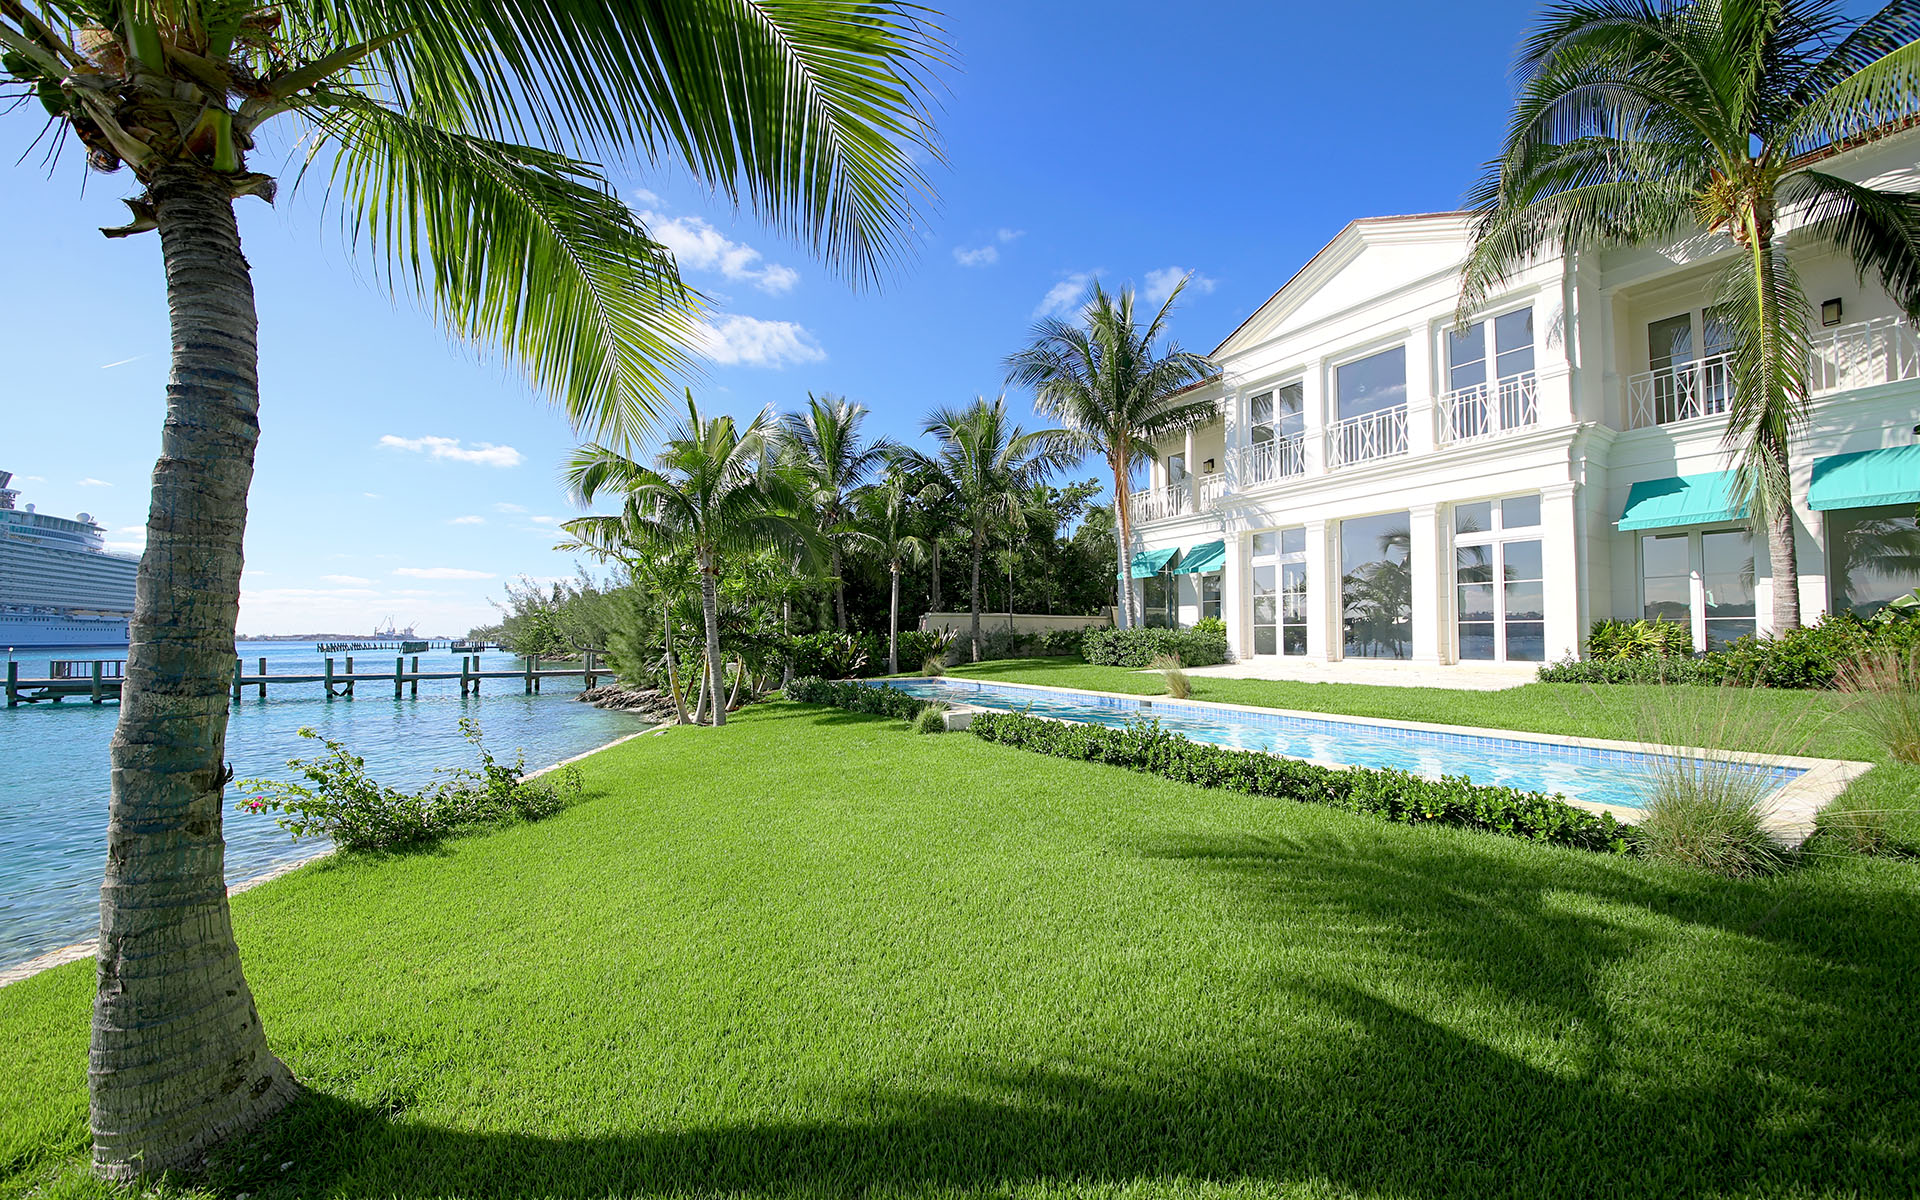 Single Family Home for Sale at Gorgeous Waterfront Home on Paradise Island - MLS 31737 Nassau And Paradise Island, Bahamas